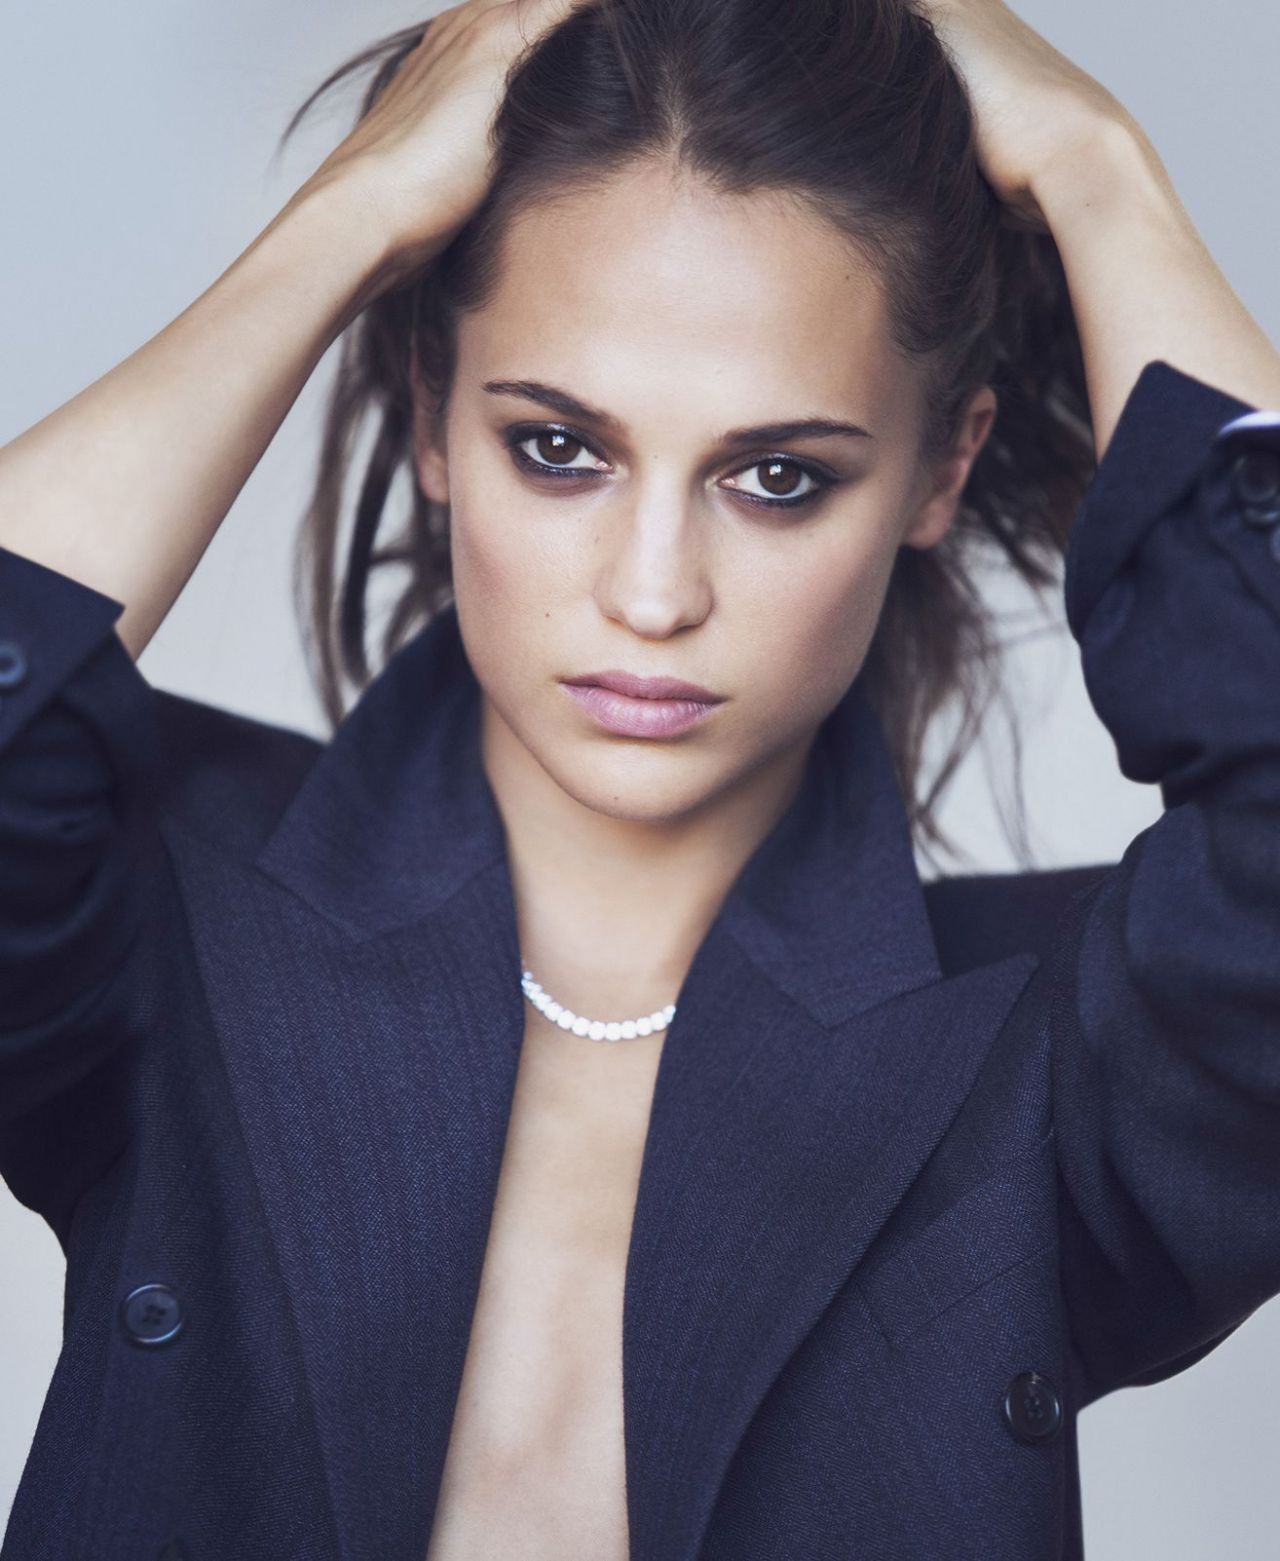 Alicia Vikander nudes (89 pics) Young, Facebook, braless